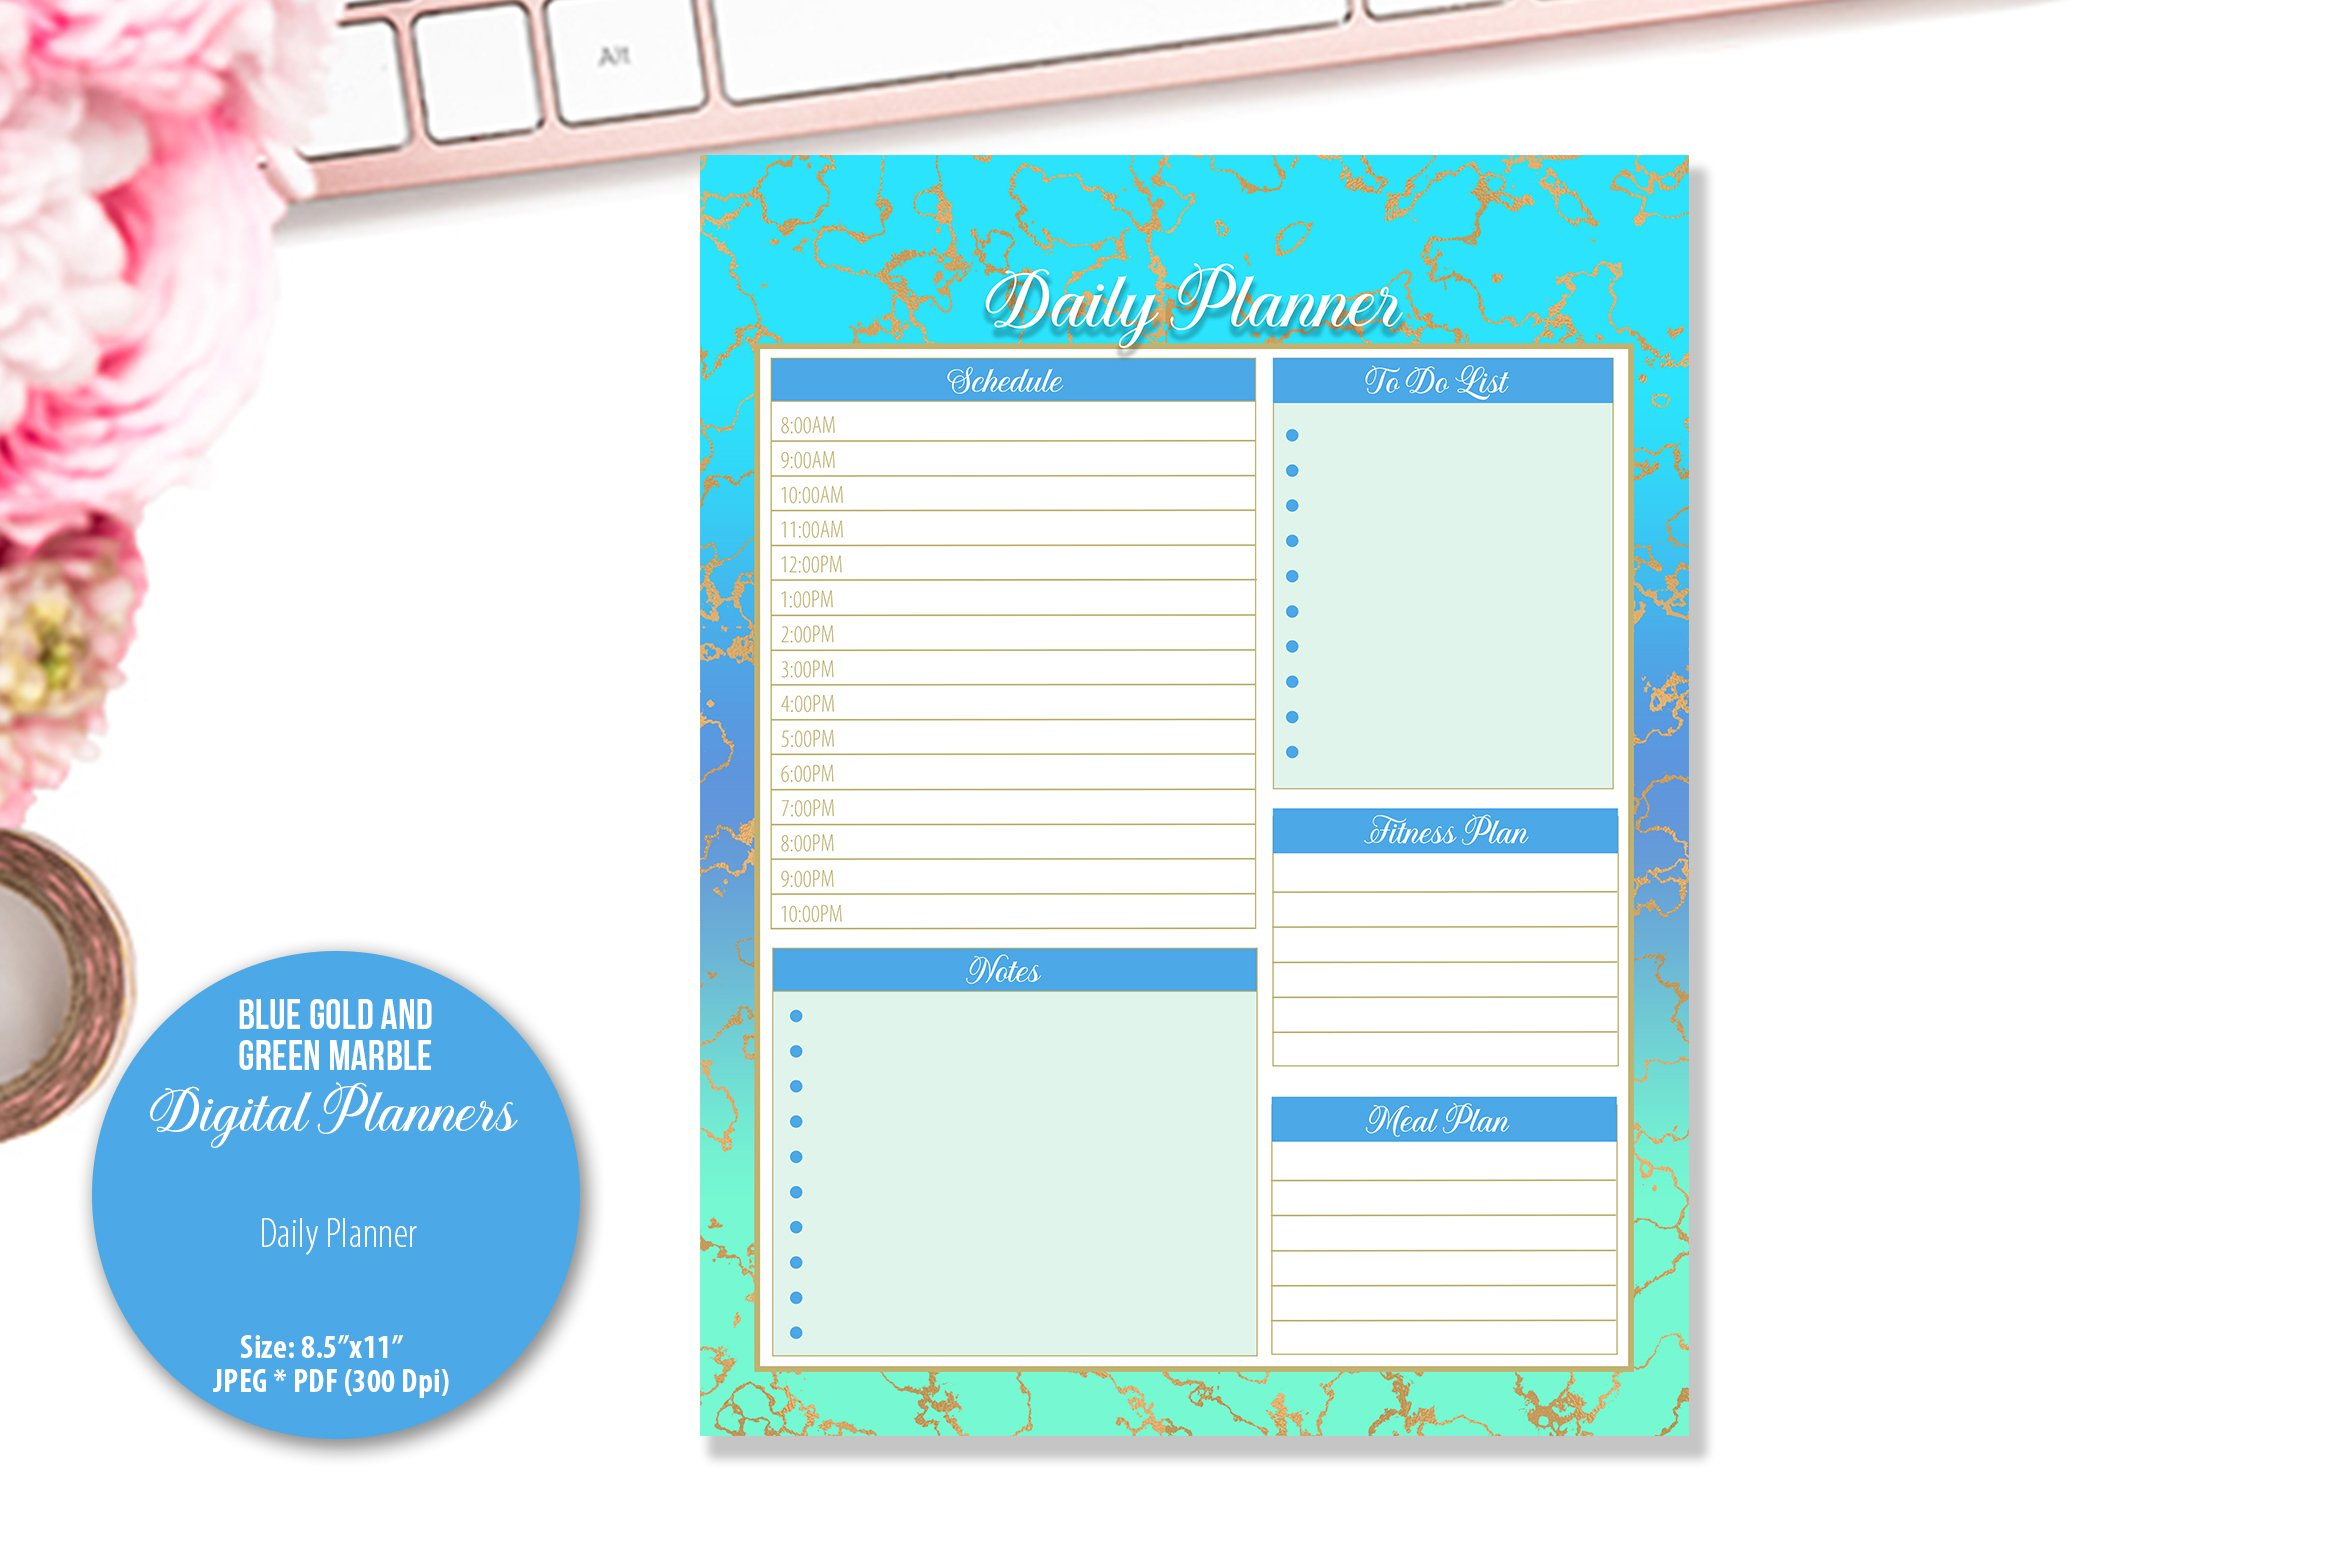 Blue Gold and Green Marble Digital Planner example image 2